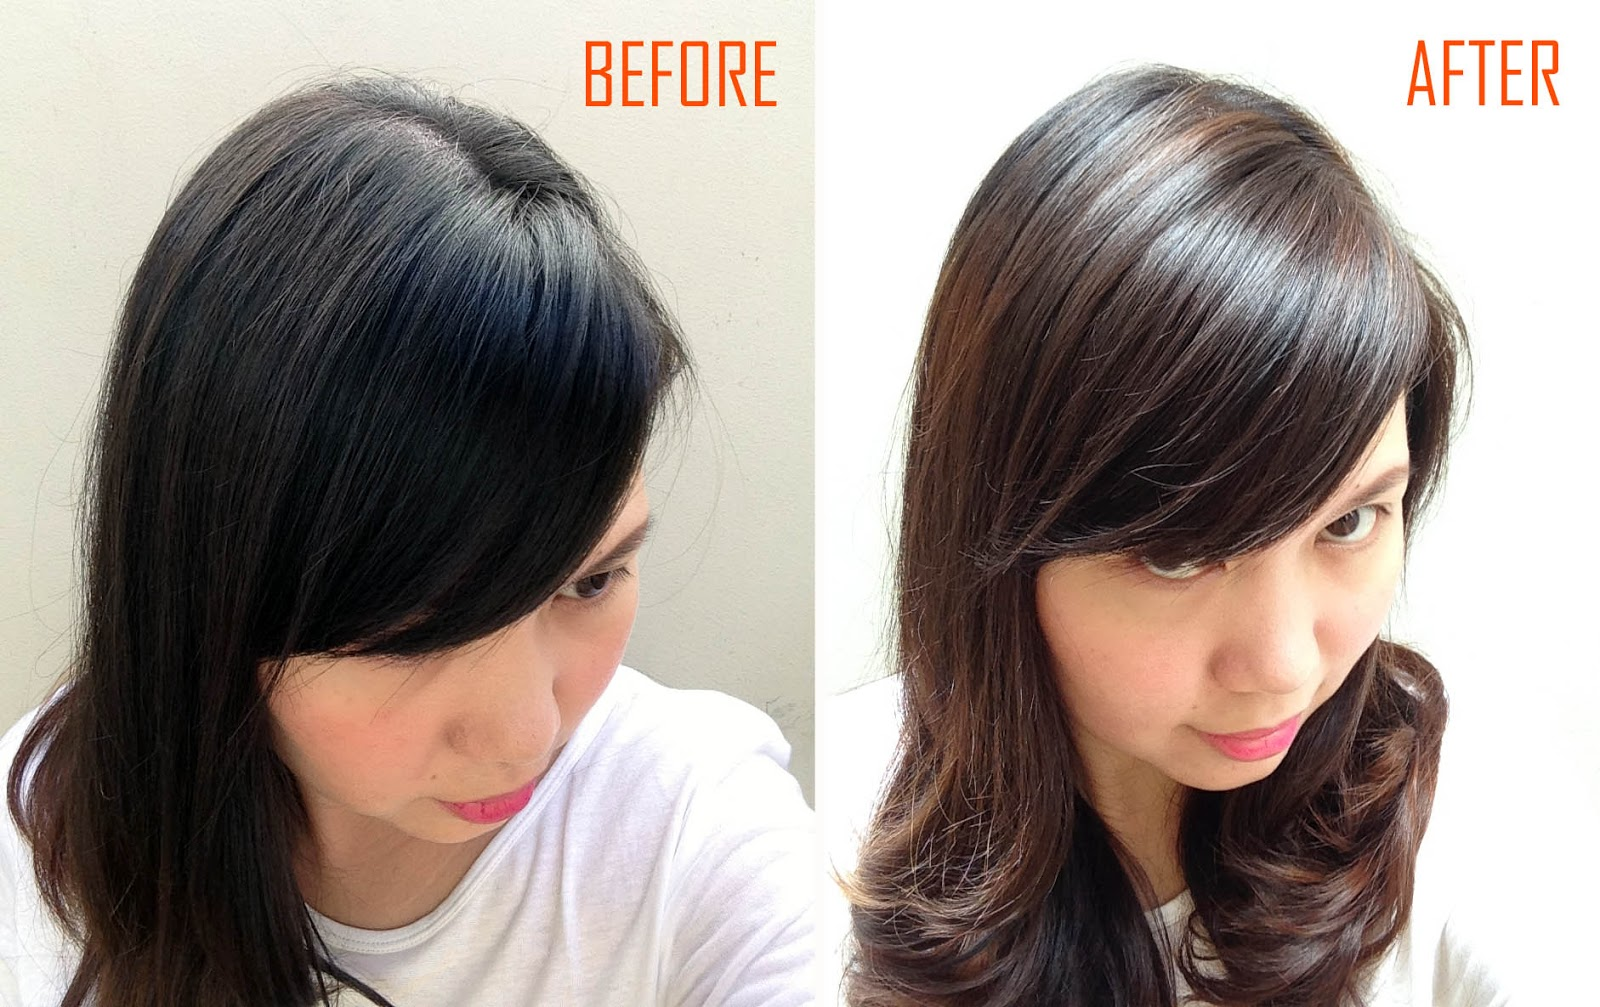 Mrsmommyholic diy balayage highlights able to lighten my hair while giving it subtle highlights basically i didnt want it to be one even color all throughout so i think i achived that solutioingenieria Image collections